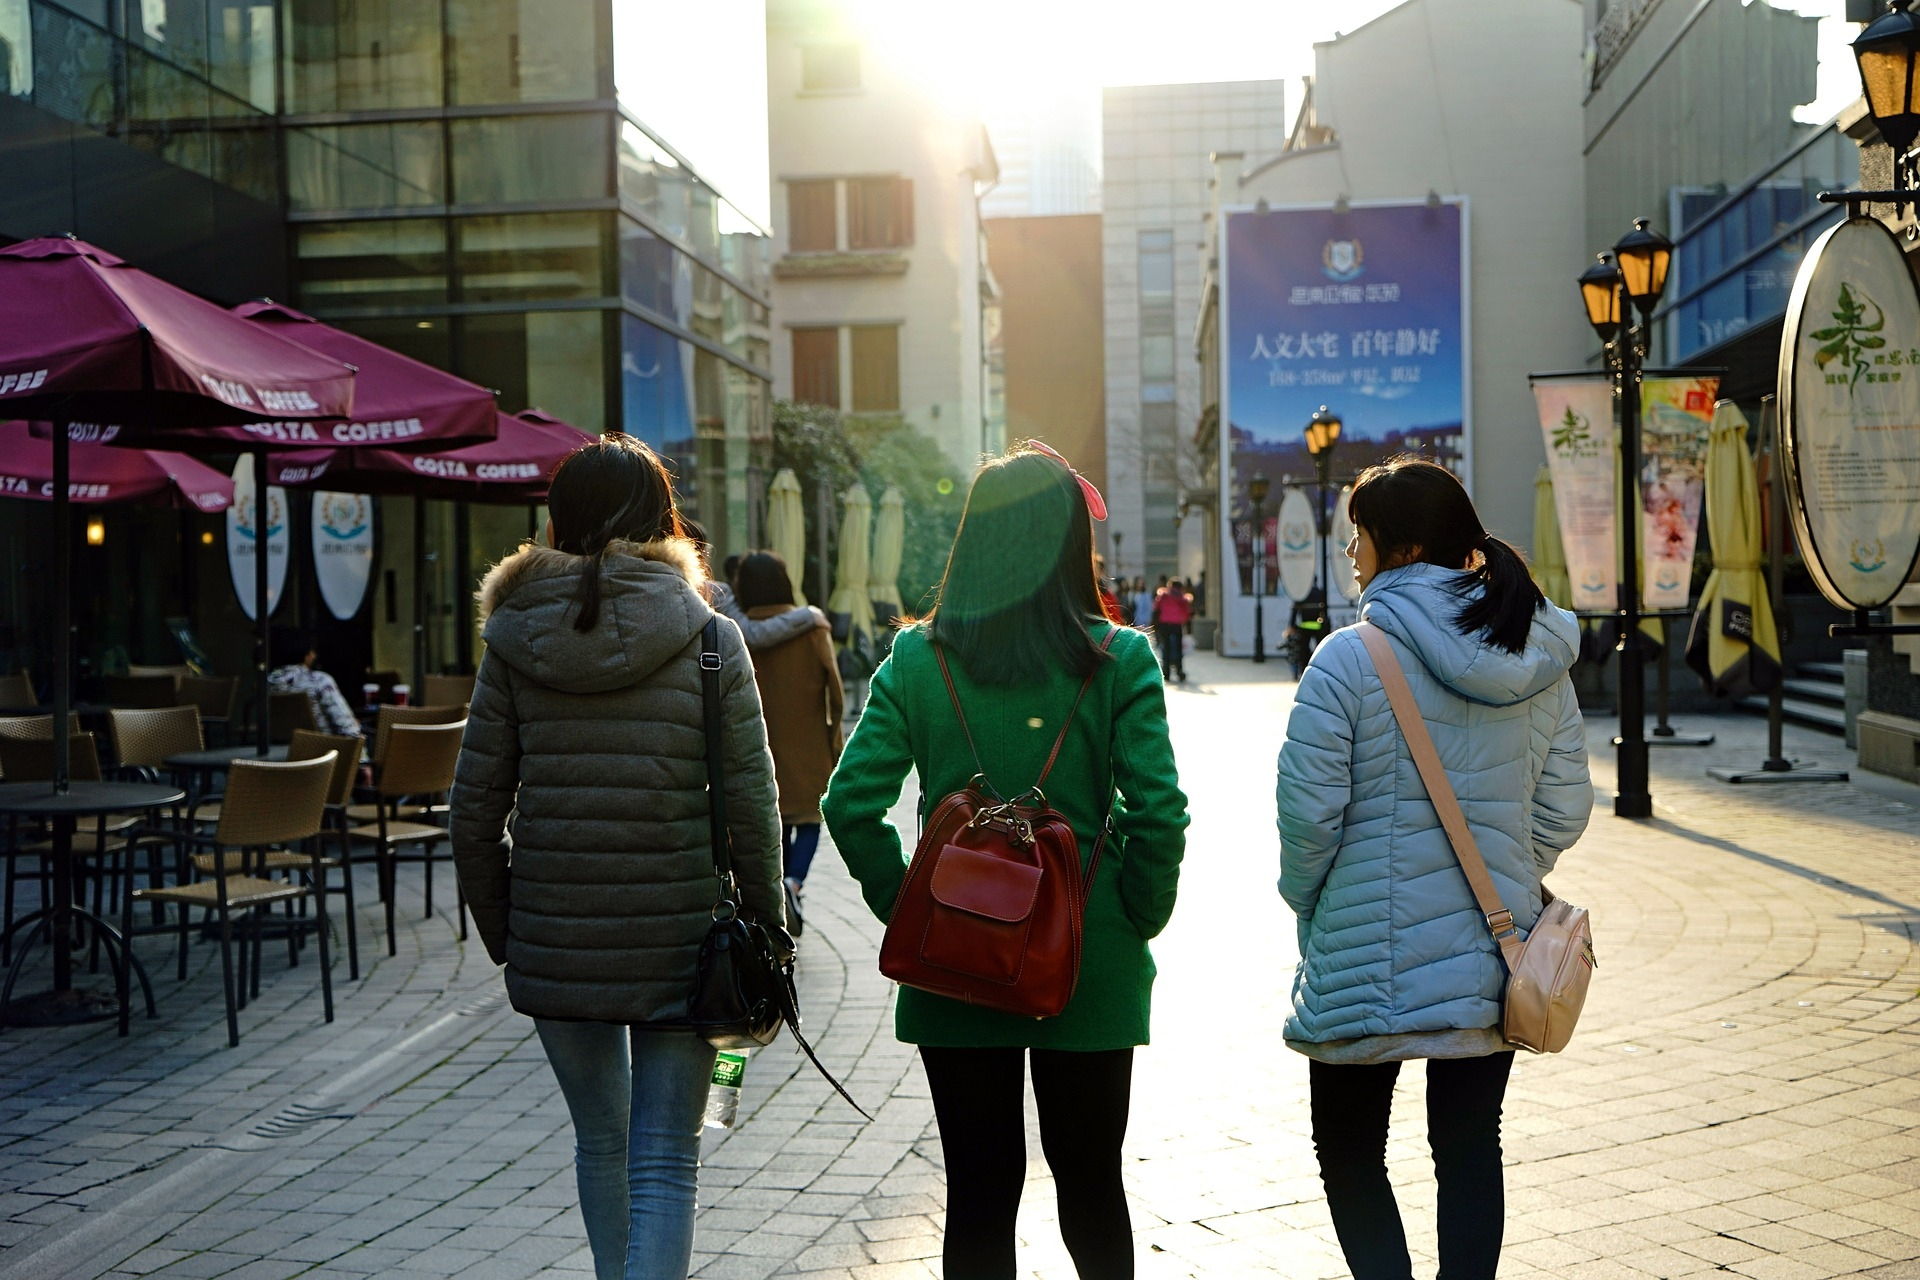 Three Chinese women walking in Shanghai, backs to the camera